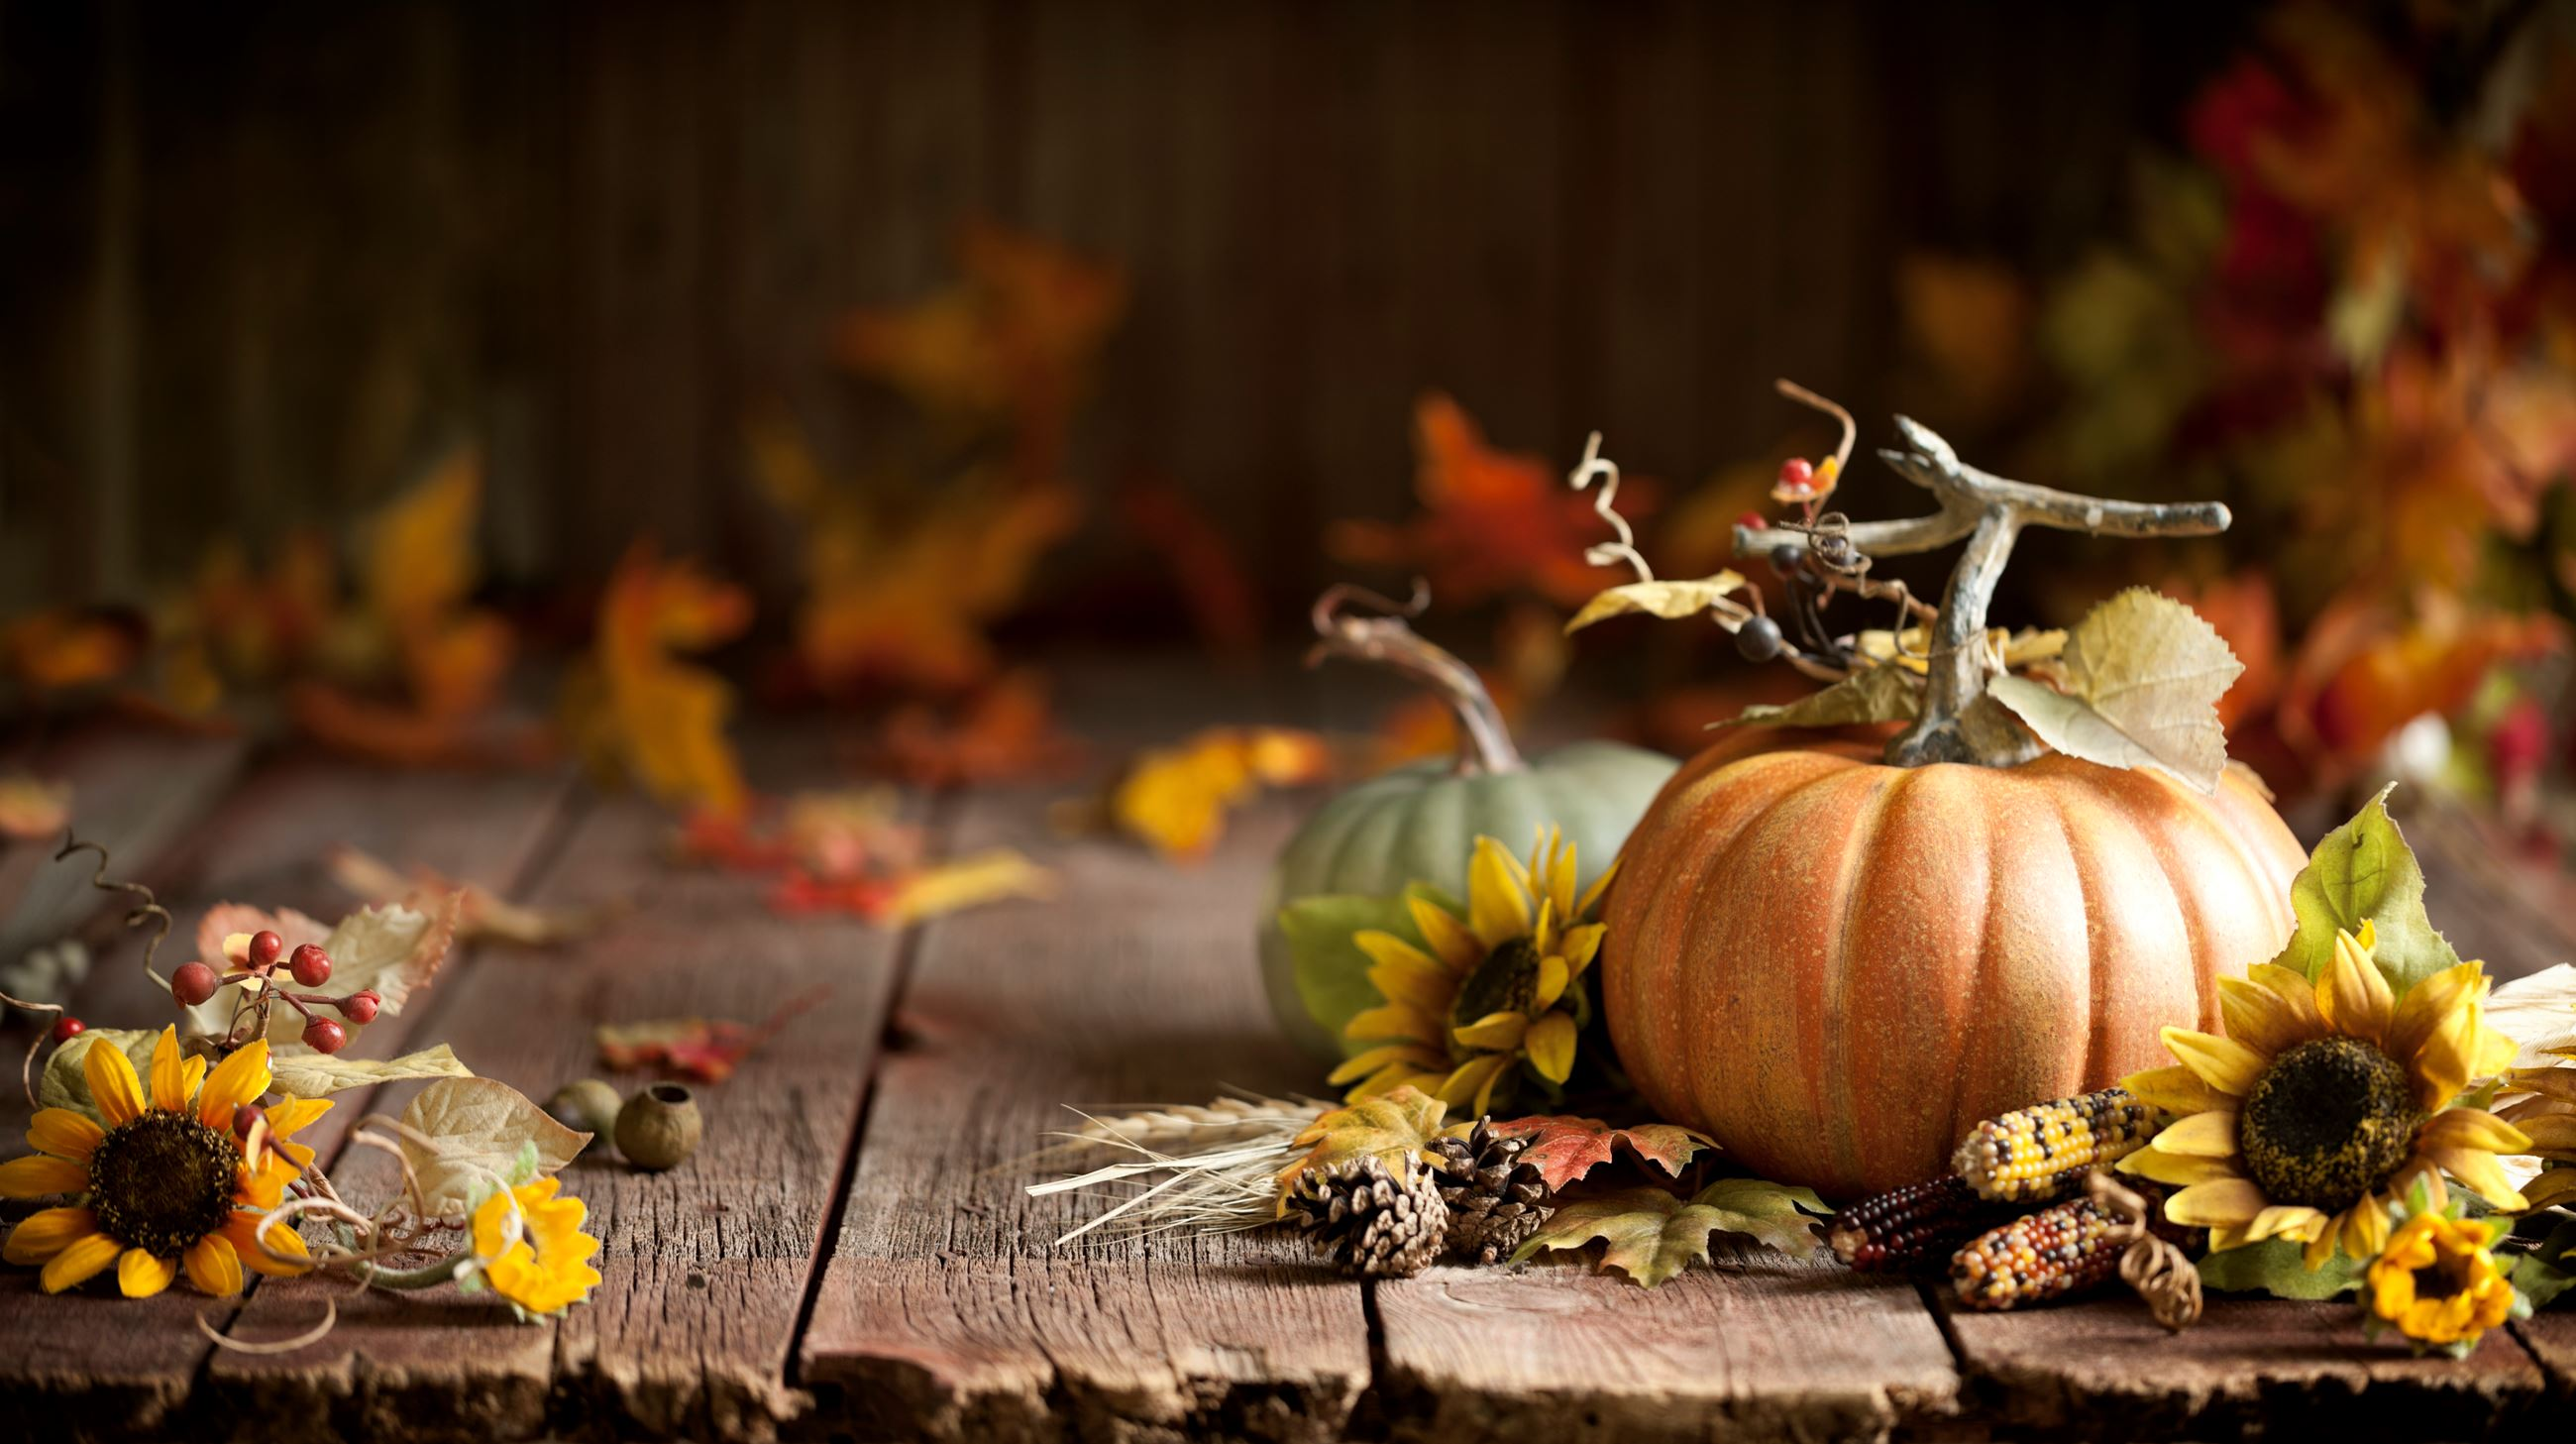 Photo of pumpkin and fall flowers on a porch